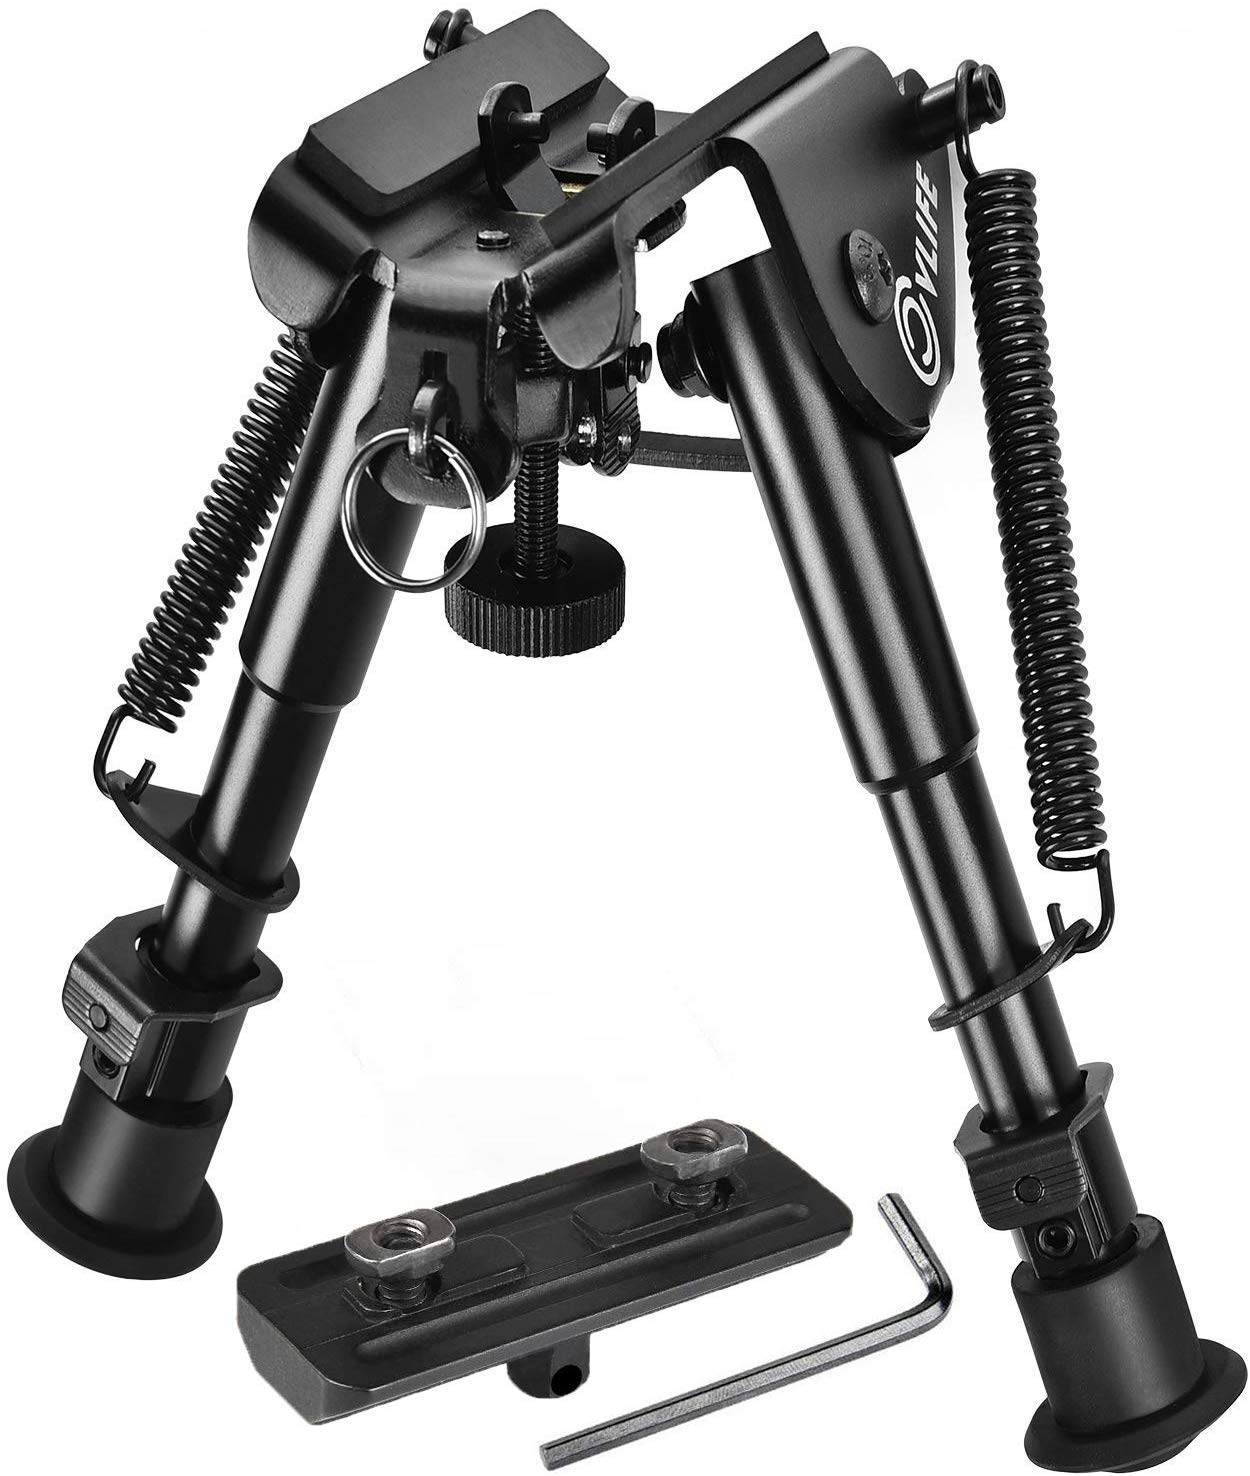 CVLIFE Bipod with M-LOK Mount Adapter 6-9 Inches by CVLIFE